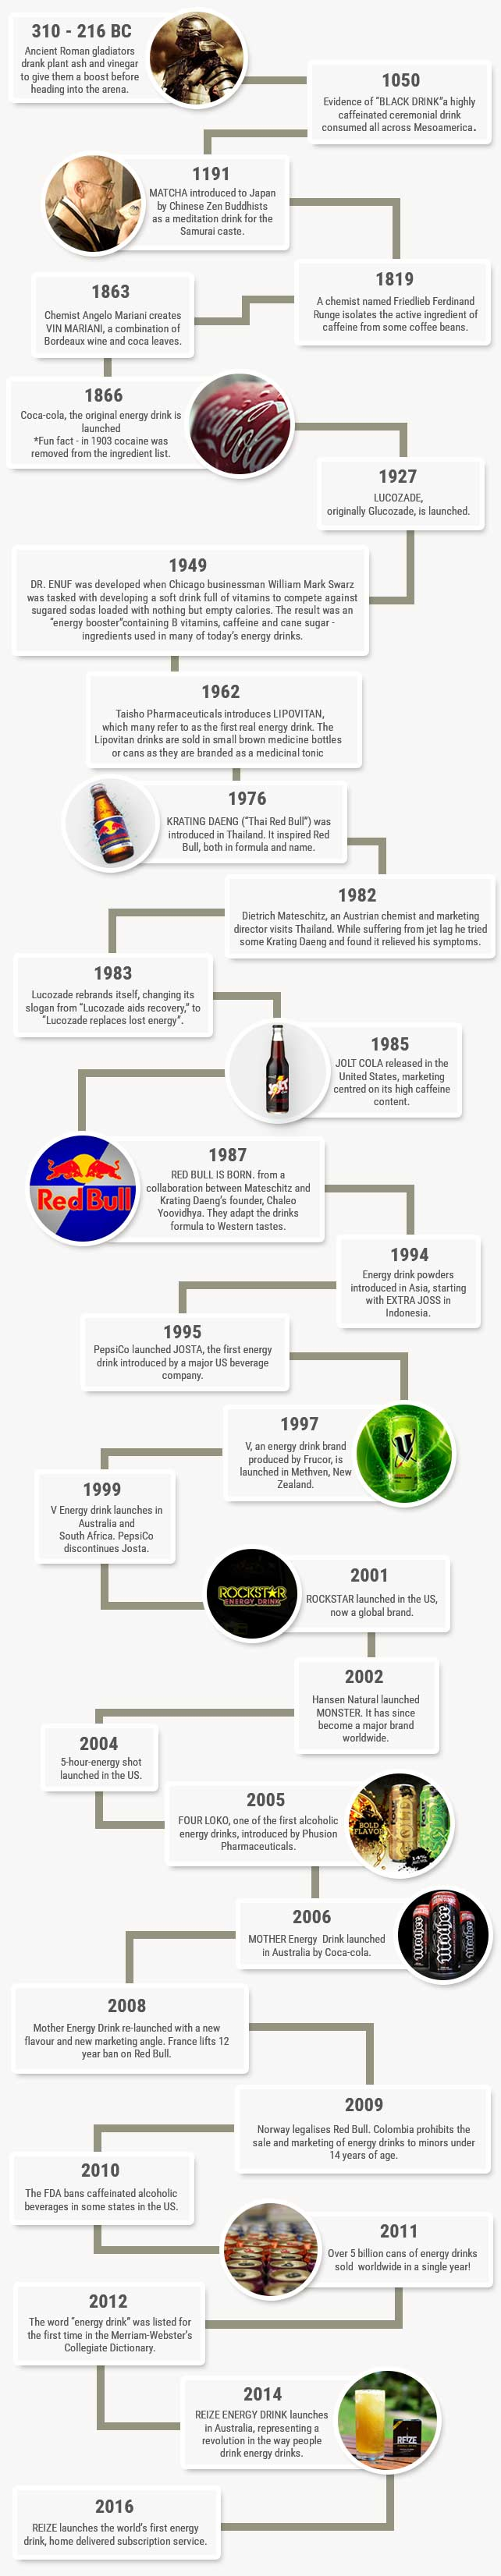 facts on energy drinks - a history